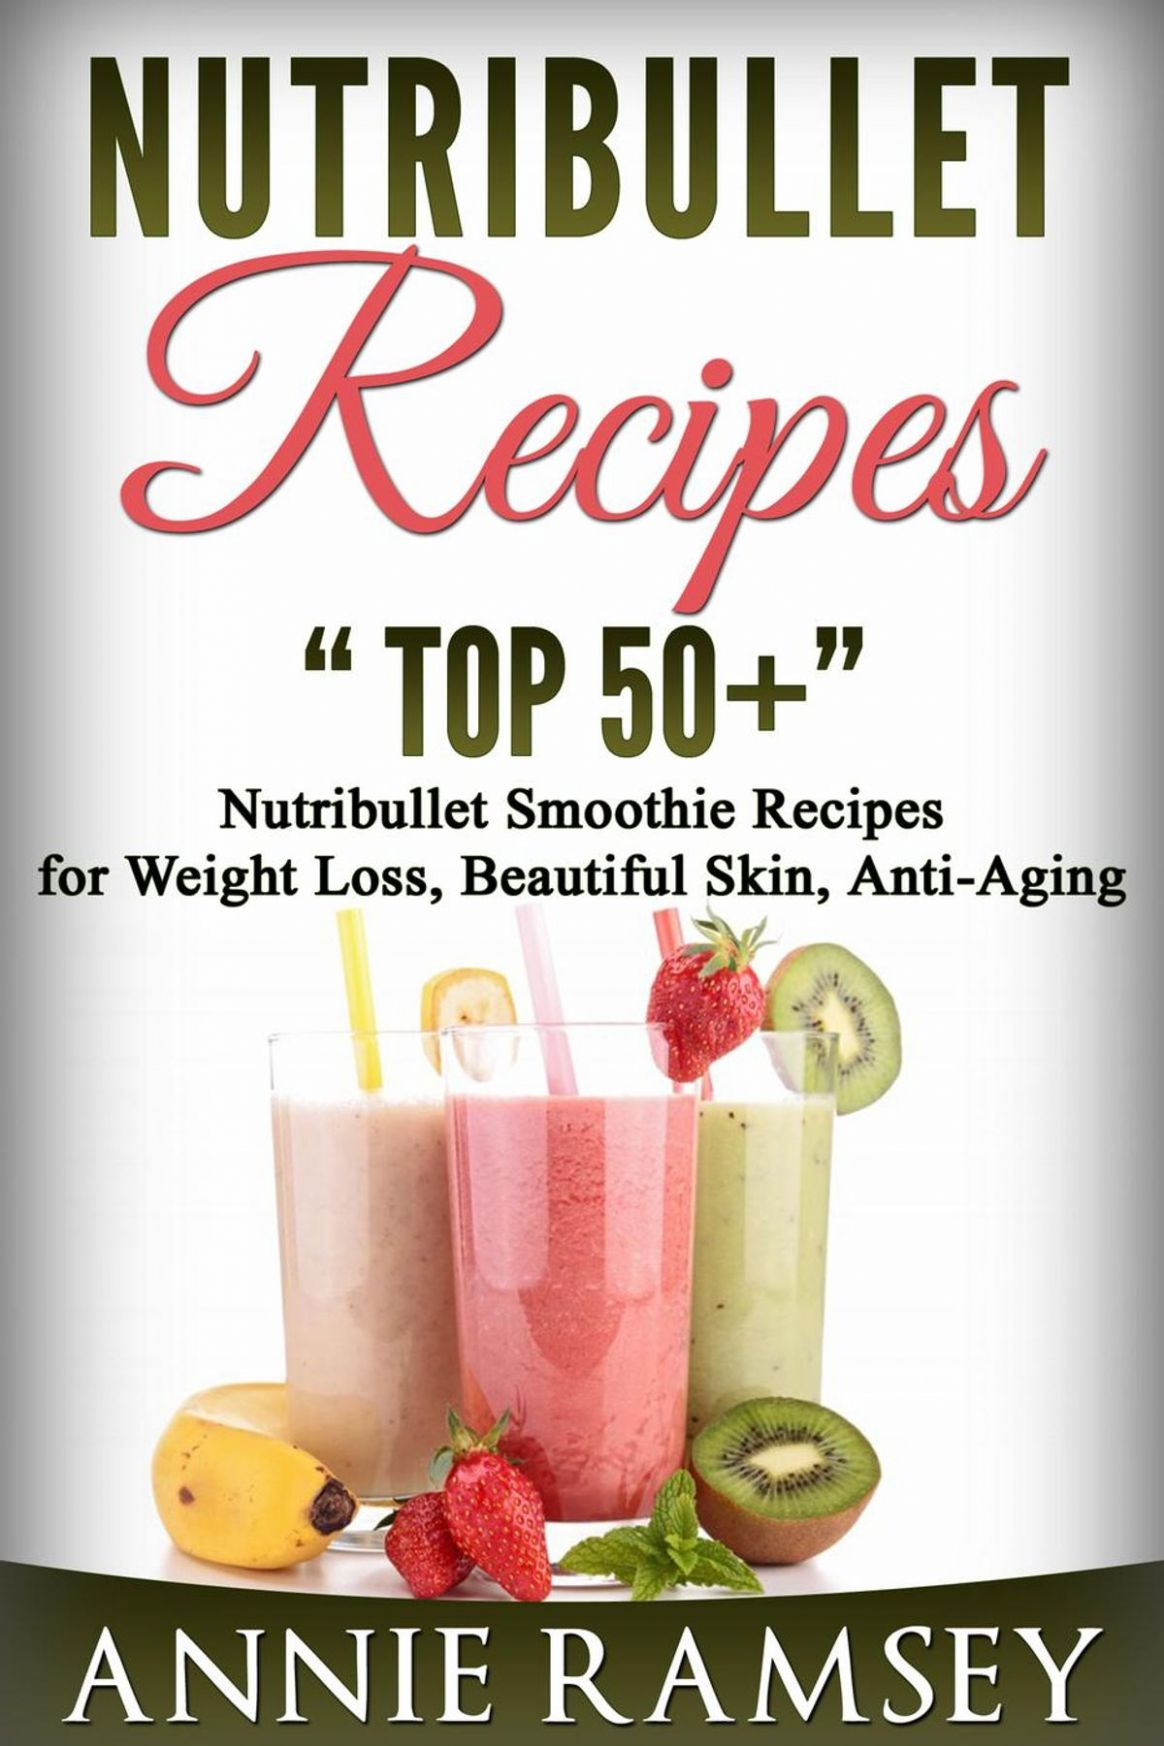 Nutribullet Recipes: Top 12 Nutribullet Smoothie Recipes for Weight Loss,  Beautiful Skin, Anti-aging eBook by Annie Ramsey - Rakuten Kobo